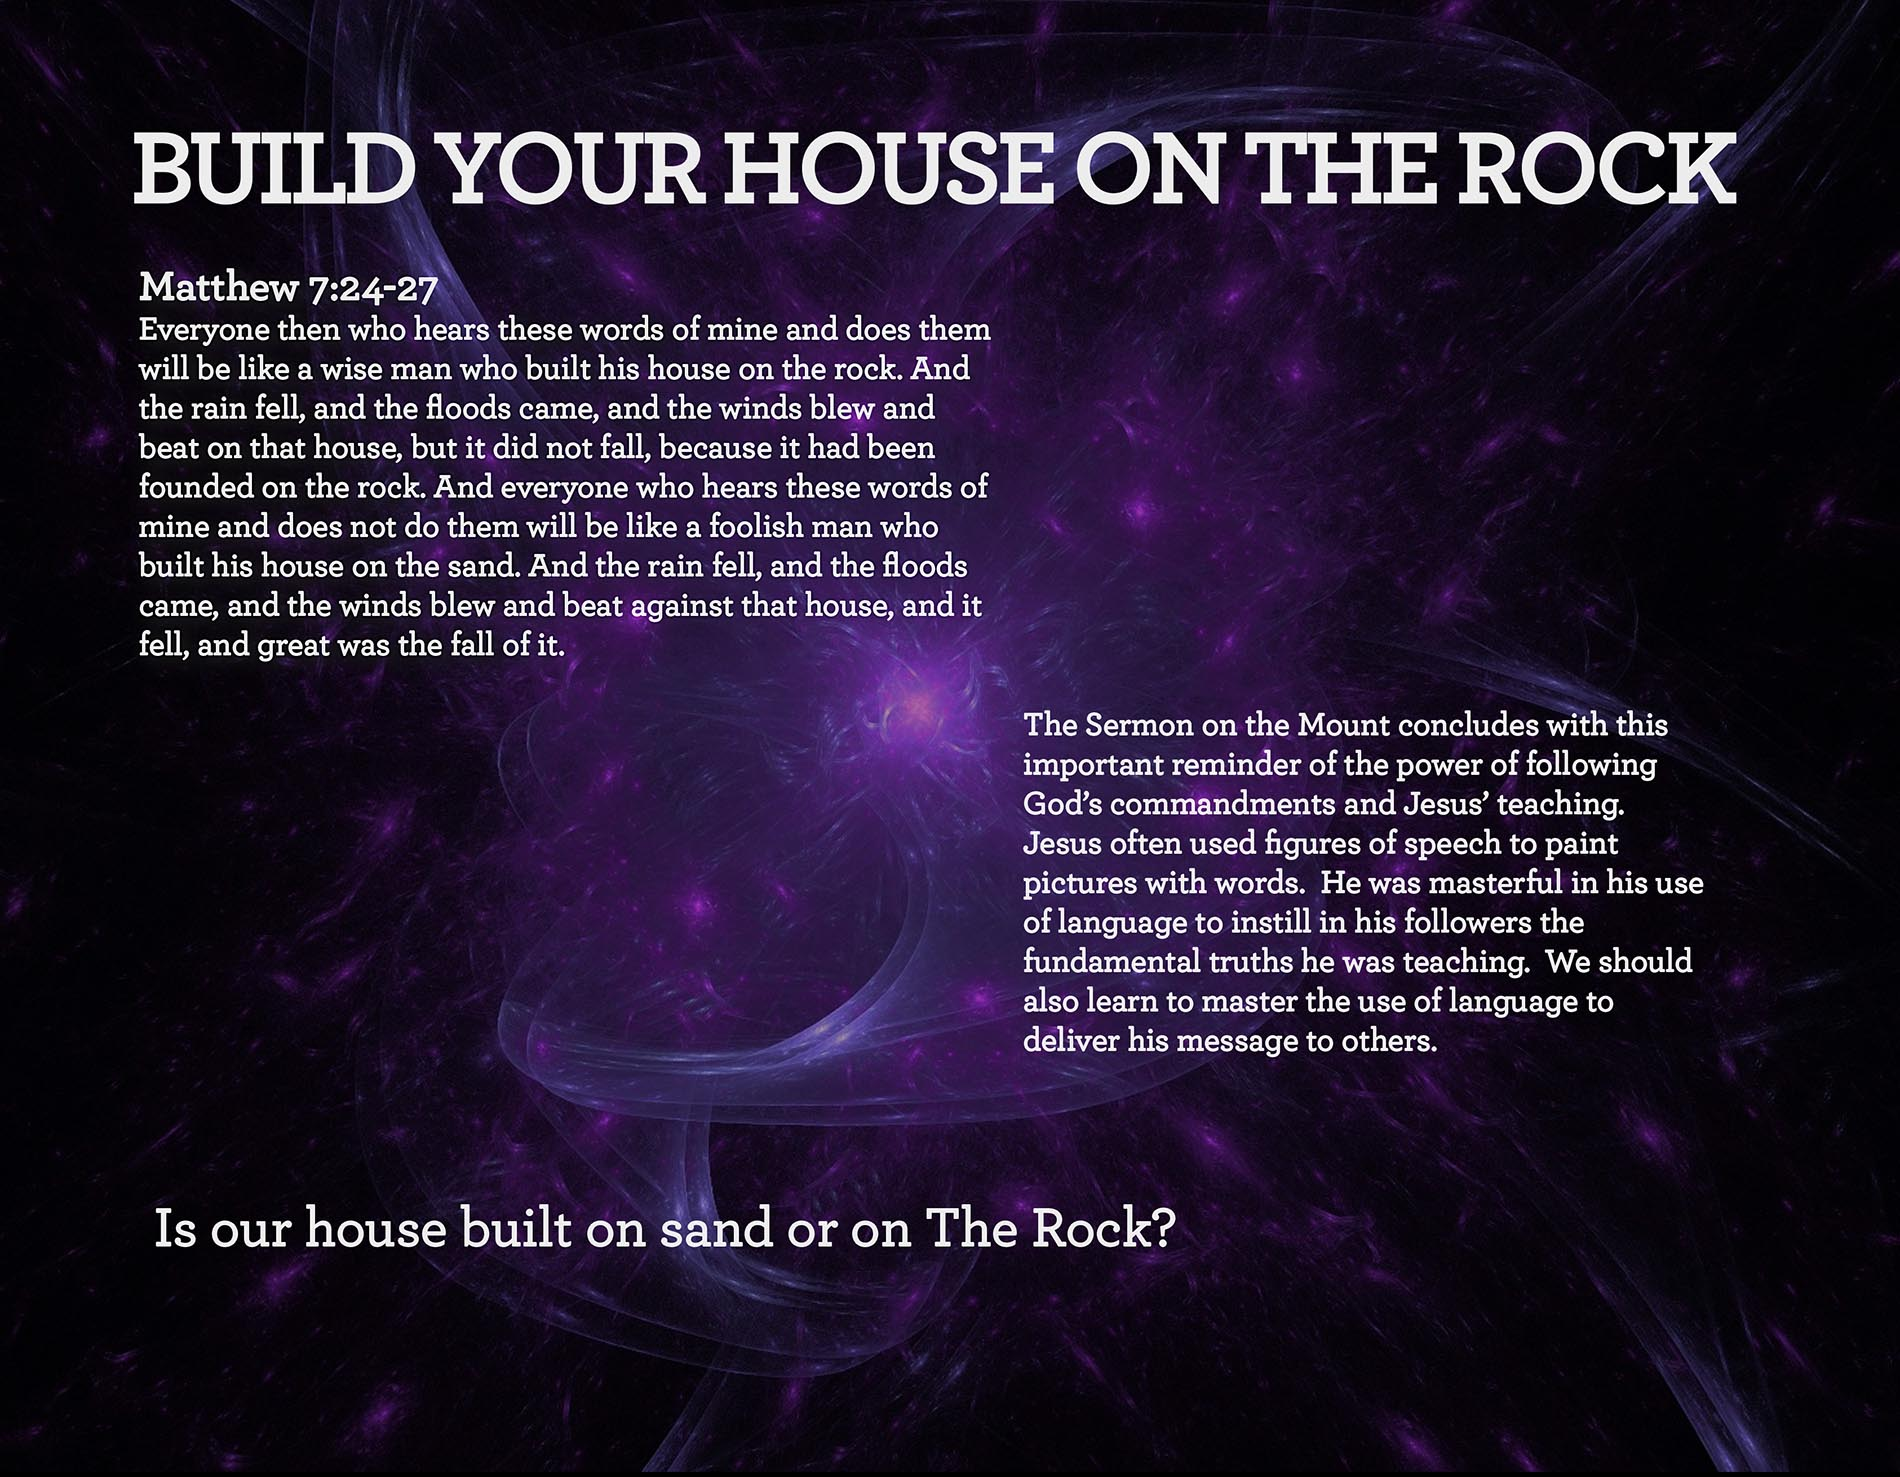 BUILD YOUR HOUSE ON THE ROCK Matthew 7:24-27